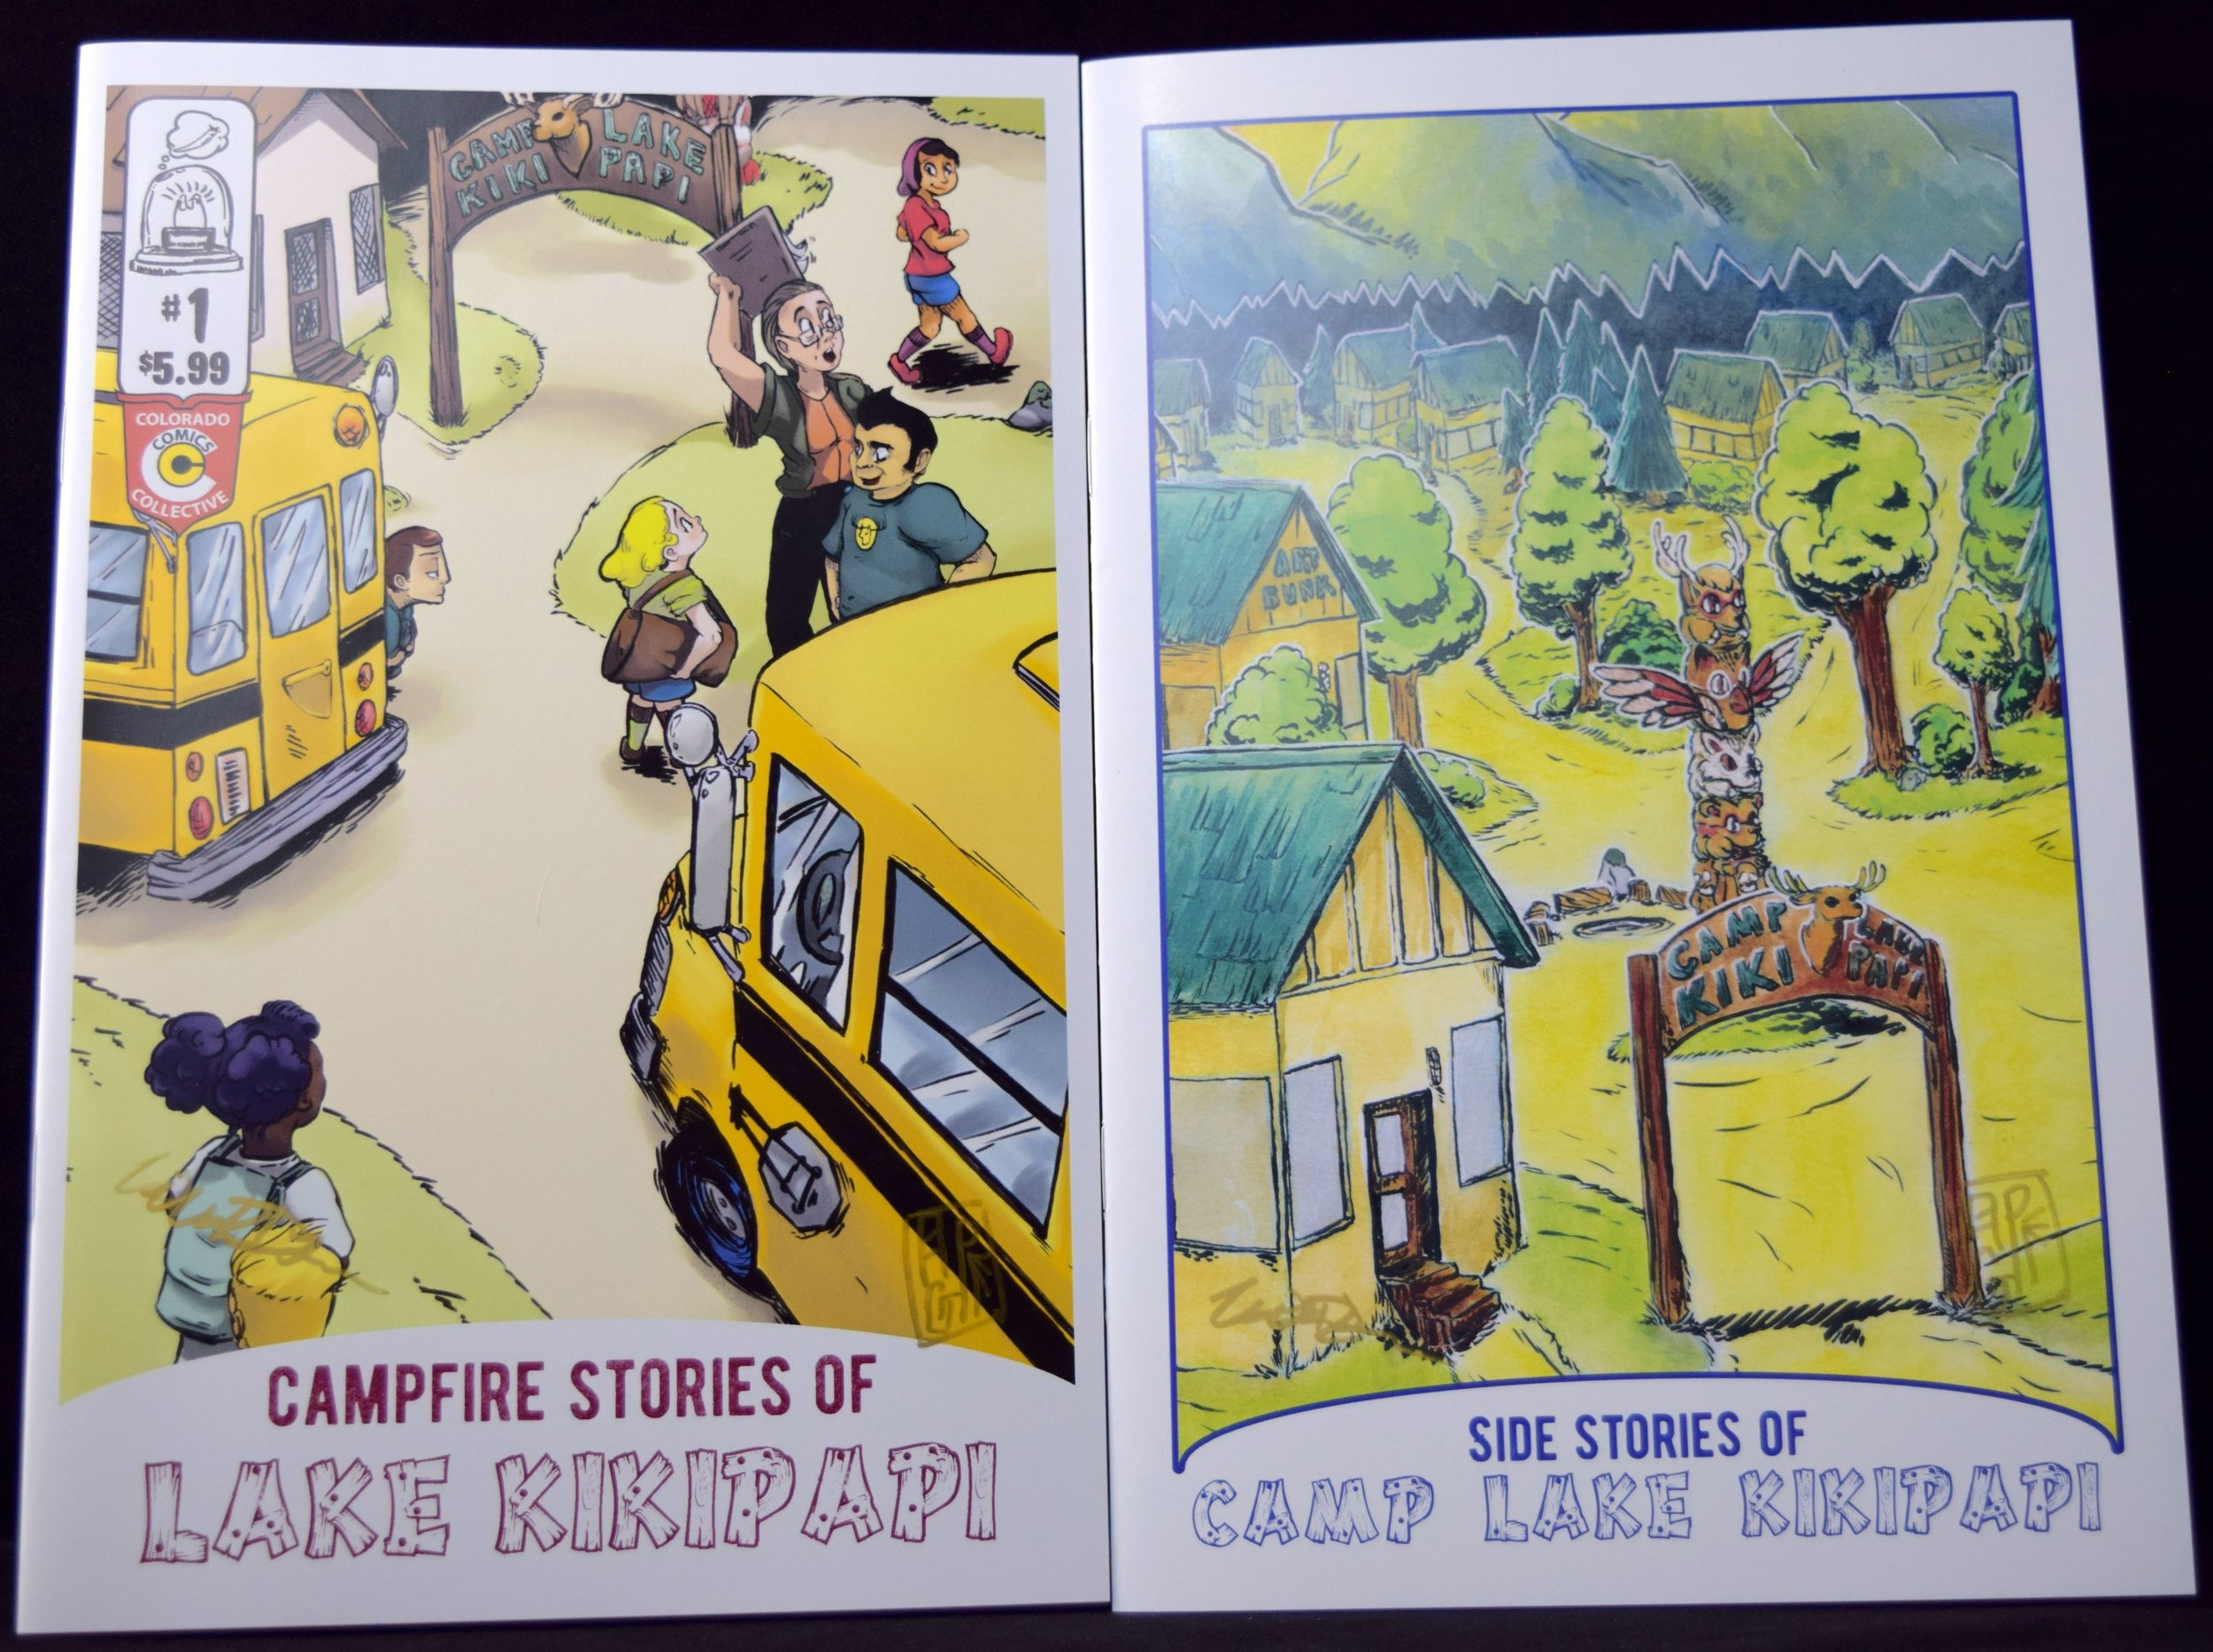 Campfire Stories of Lake Kikipapi  &  Side Stories of Camp Lake Kikipapi  - both by Bill & Pepper DeLuca.